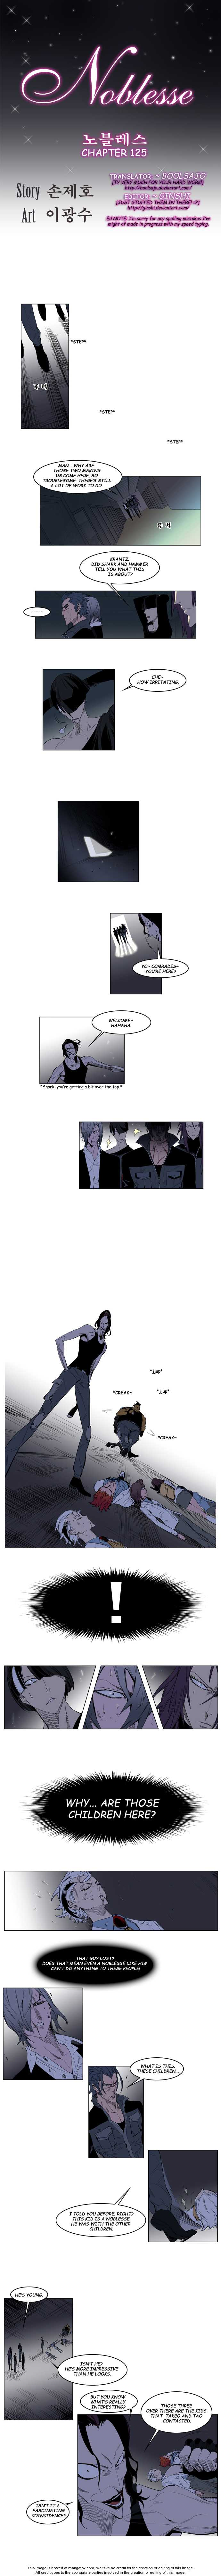 Noblesse 125 Page 1